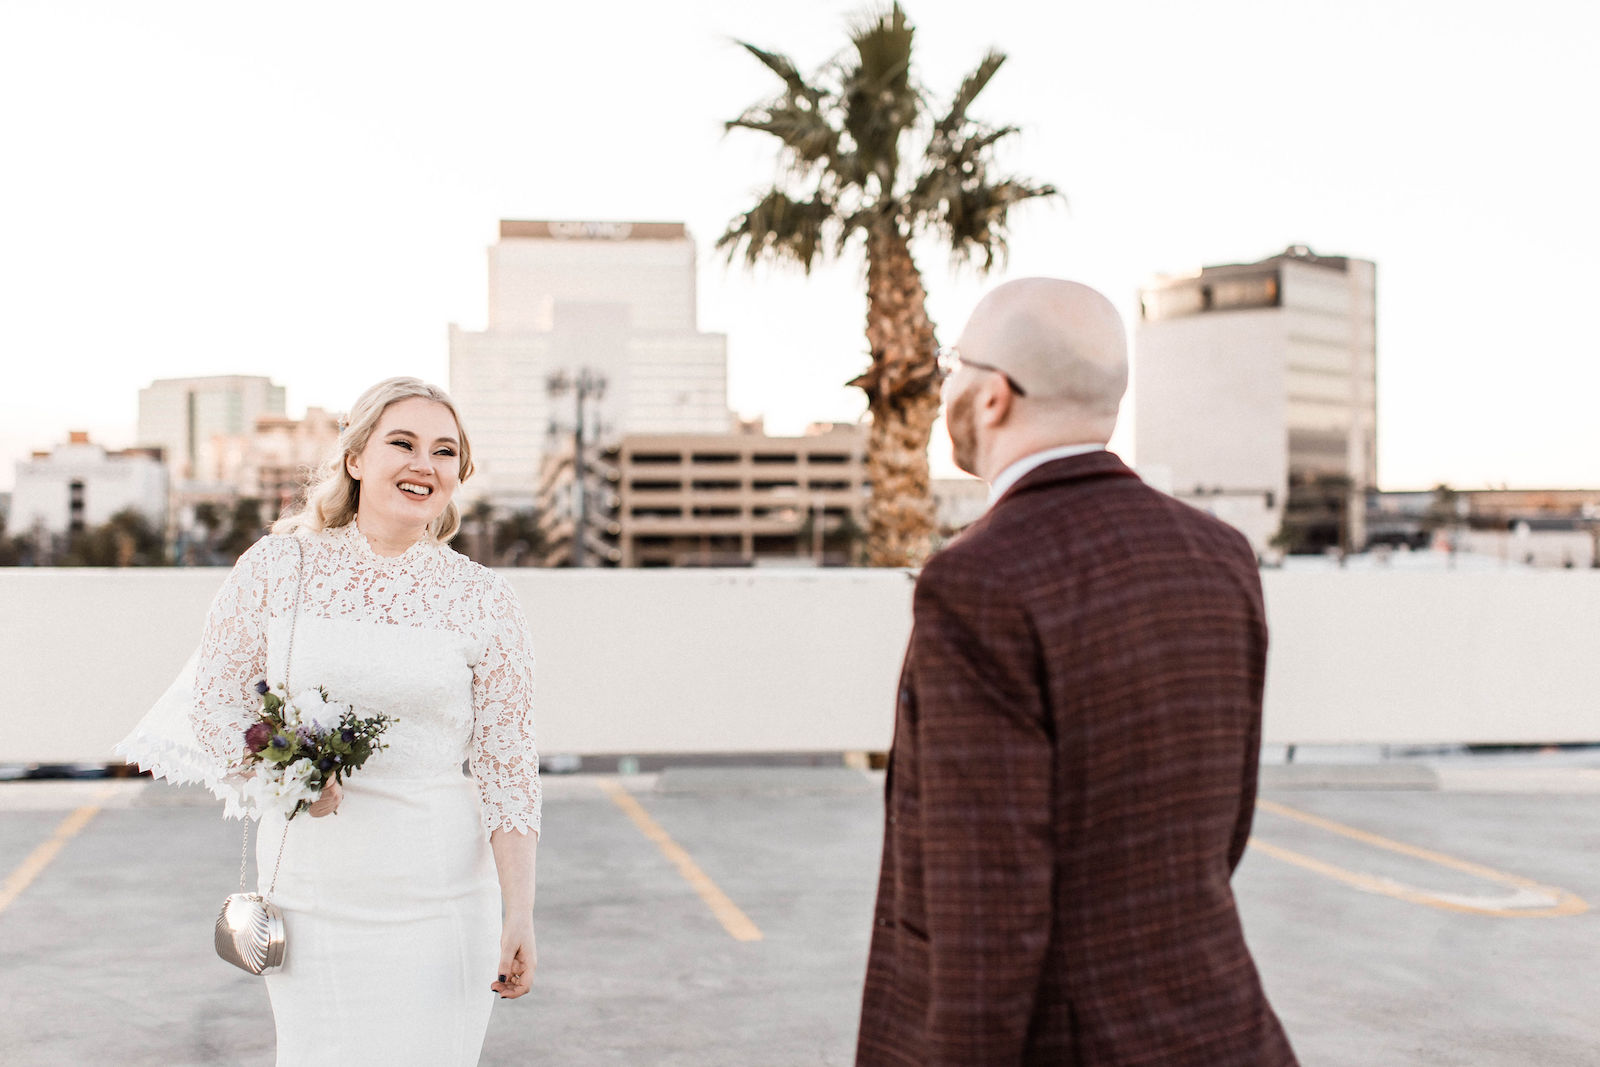 las vegas elopement rooftop downtown las vegas wedding00022.jpg